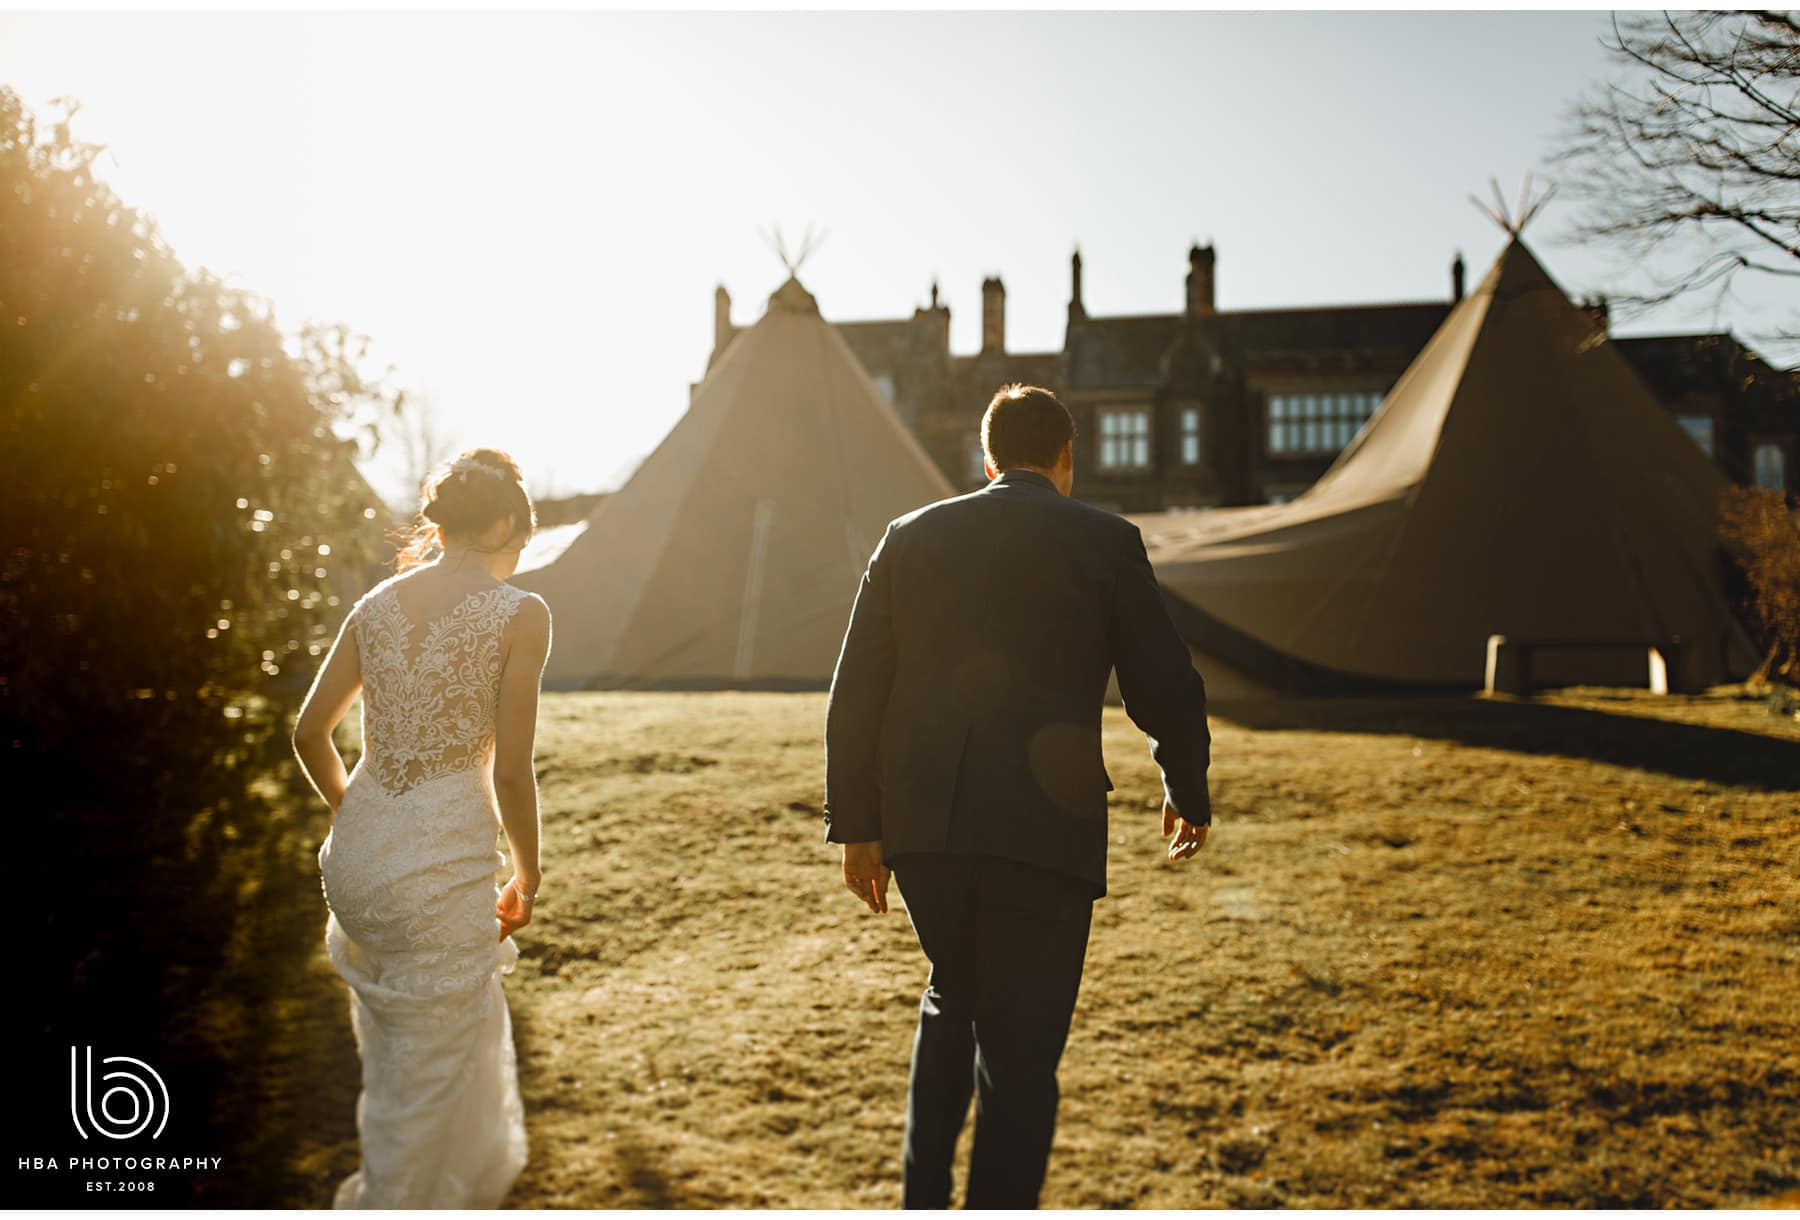 the bride & groom walking back to the tipi